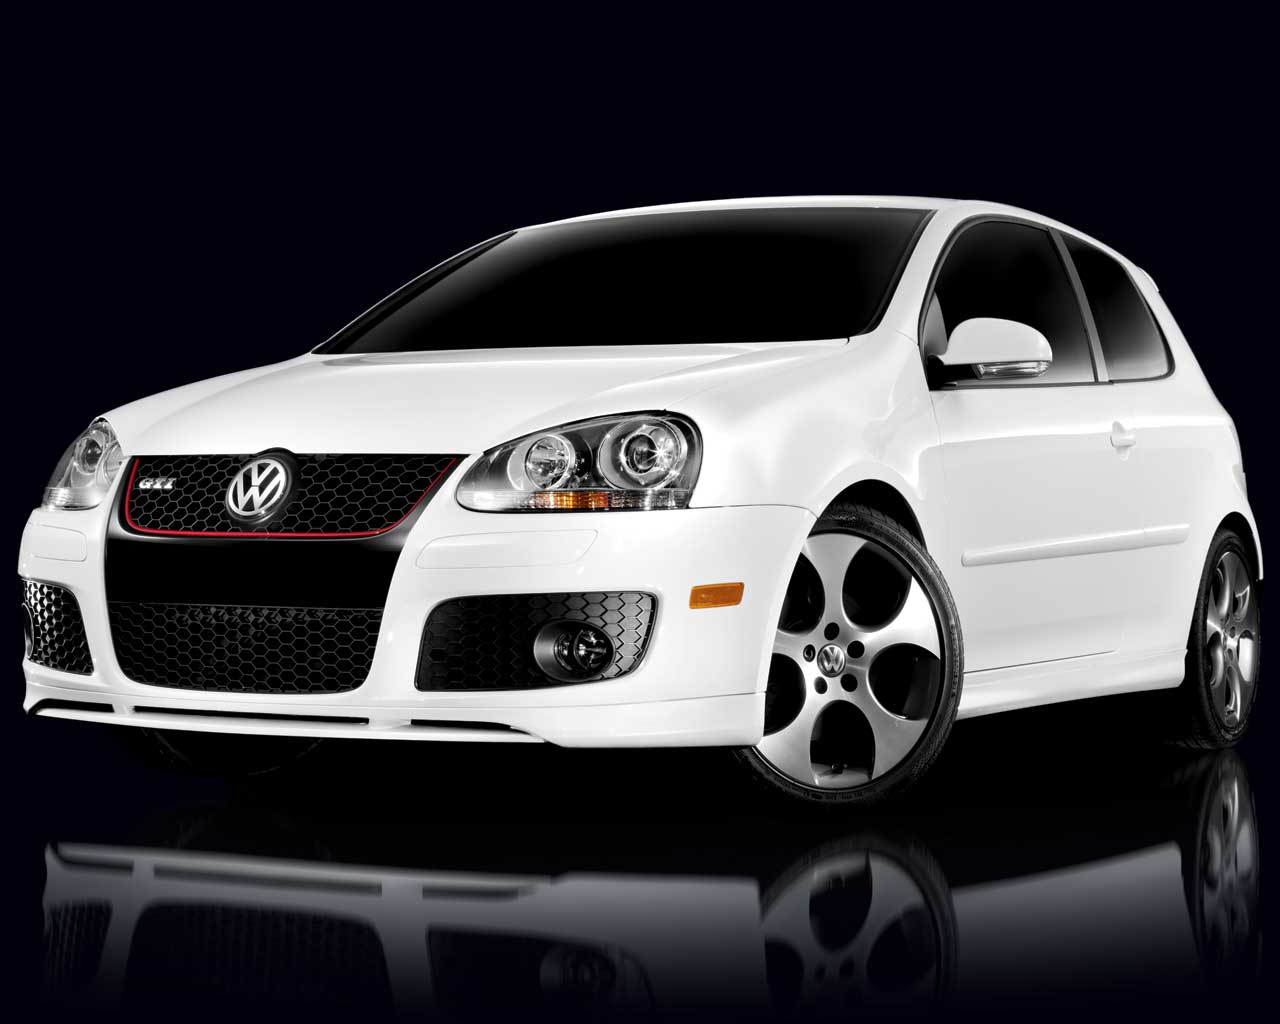 Golf Gti Hd Wallpaper Vw Gti Wallpapers Wallpaper Cave